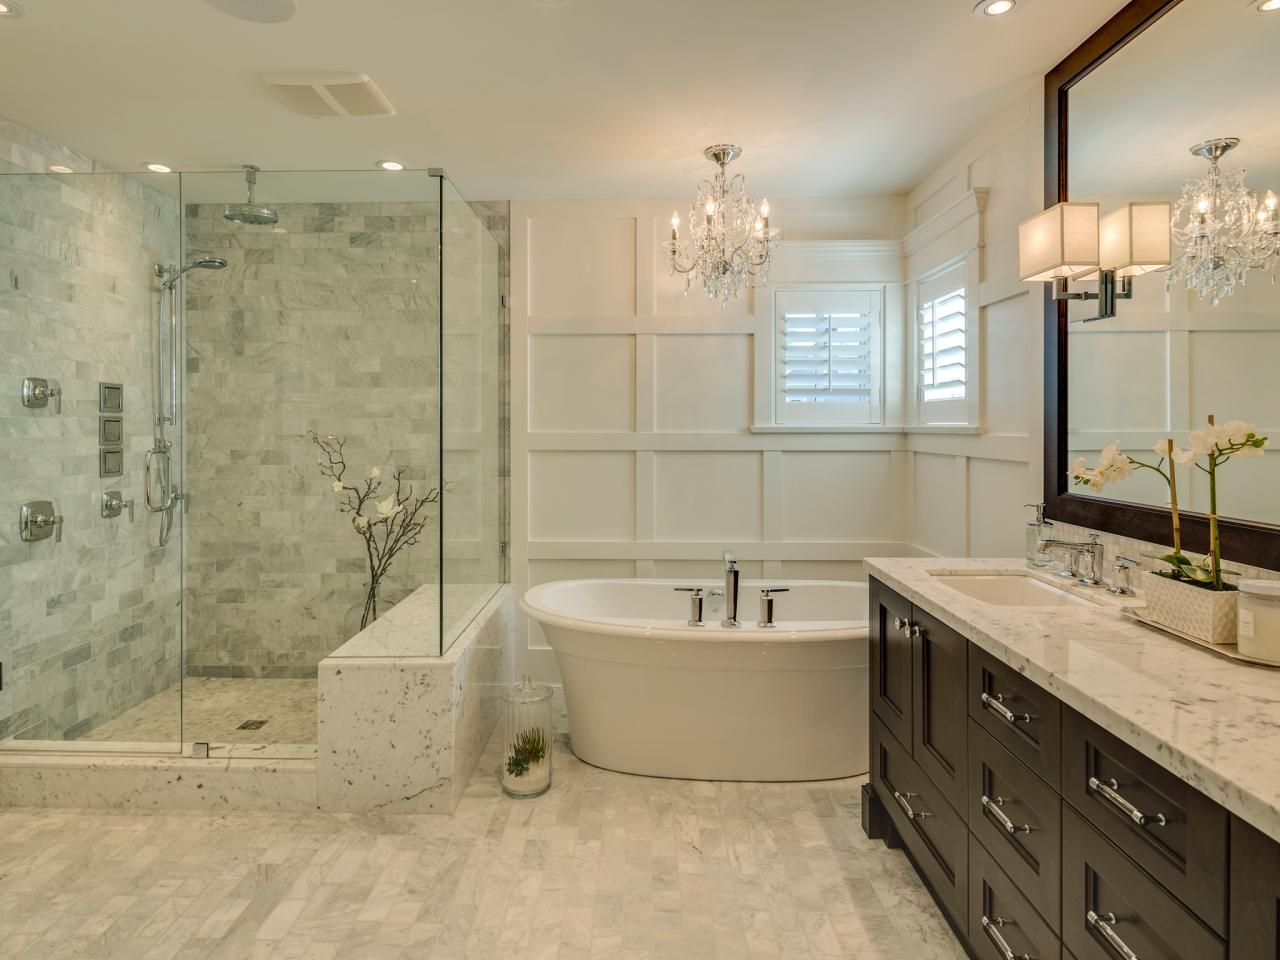 Big master bathroom ideas - Splurge Or Save 16 Gorgeous Bath Updates For Any Budget